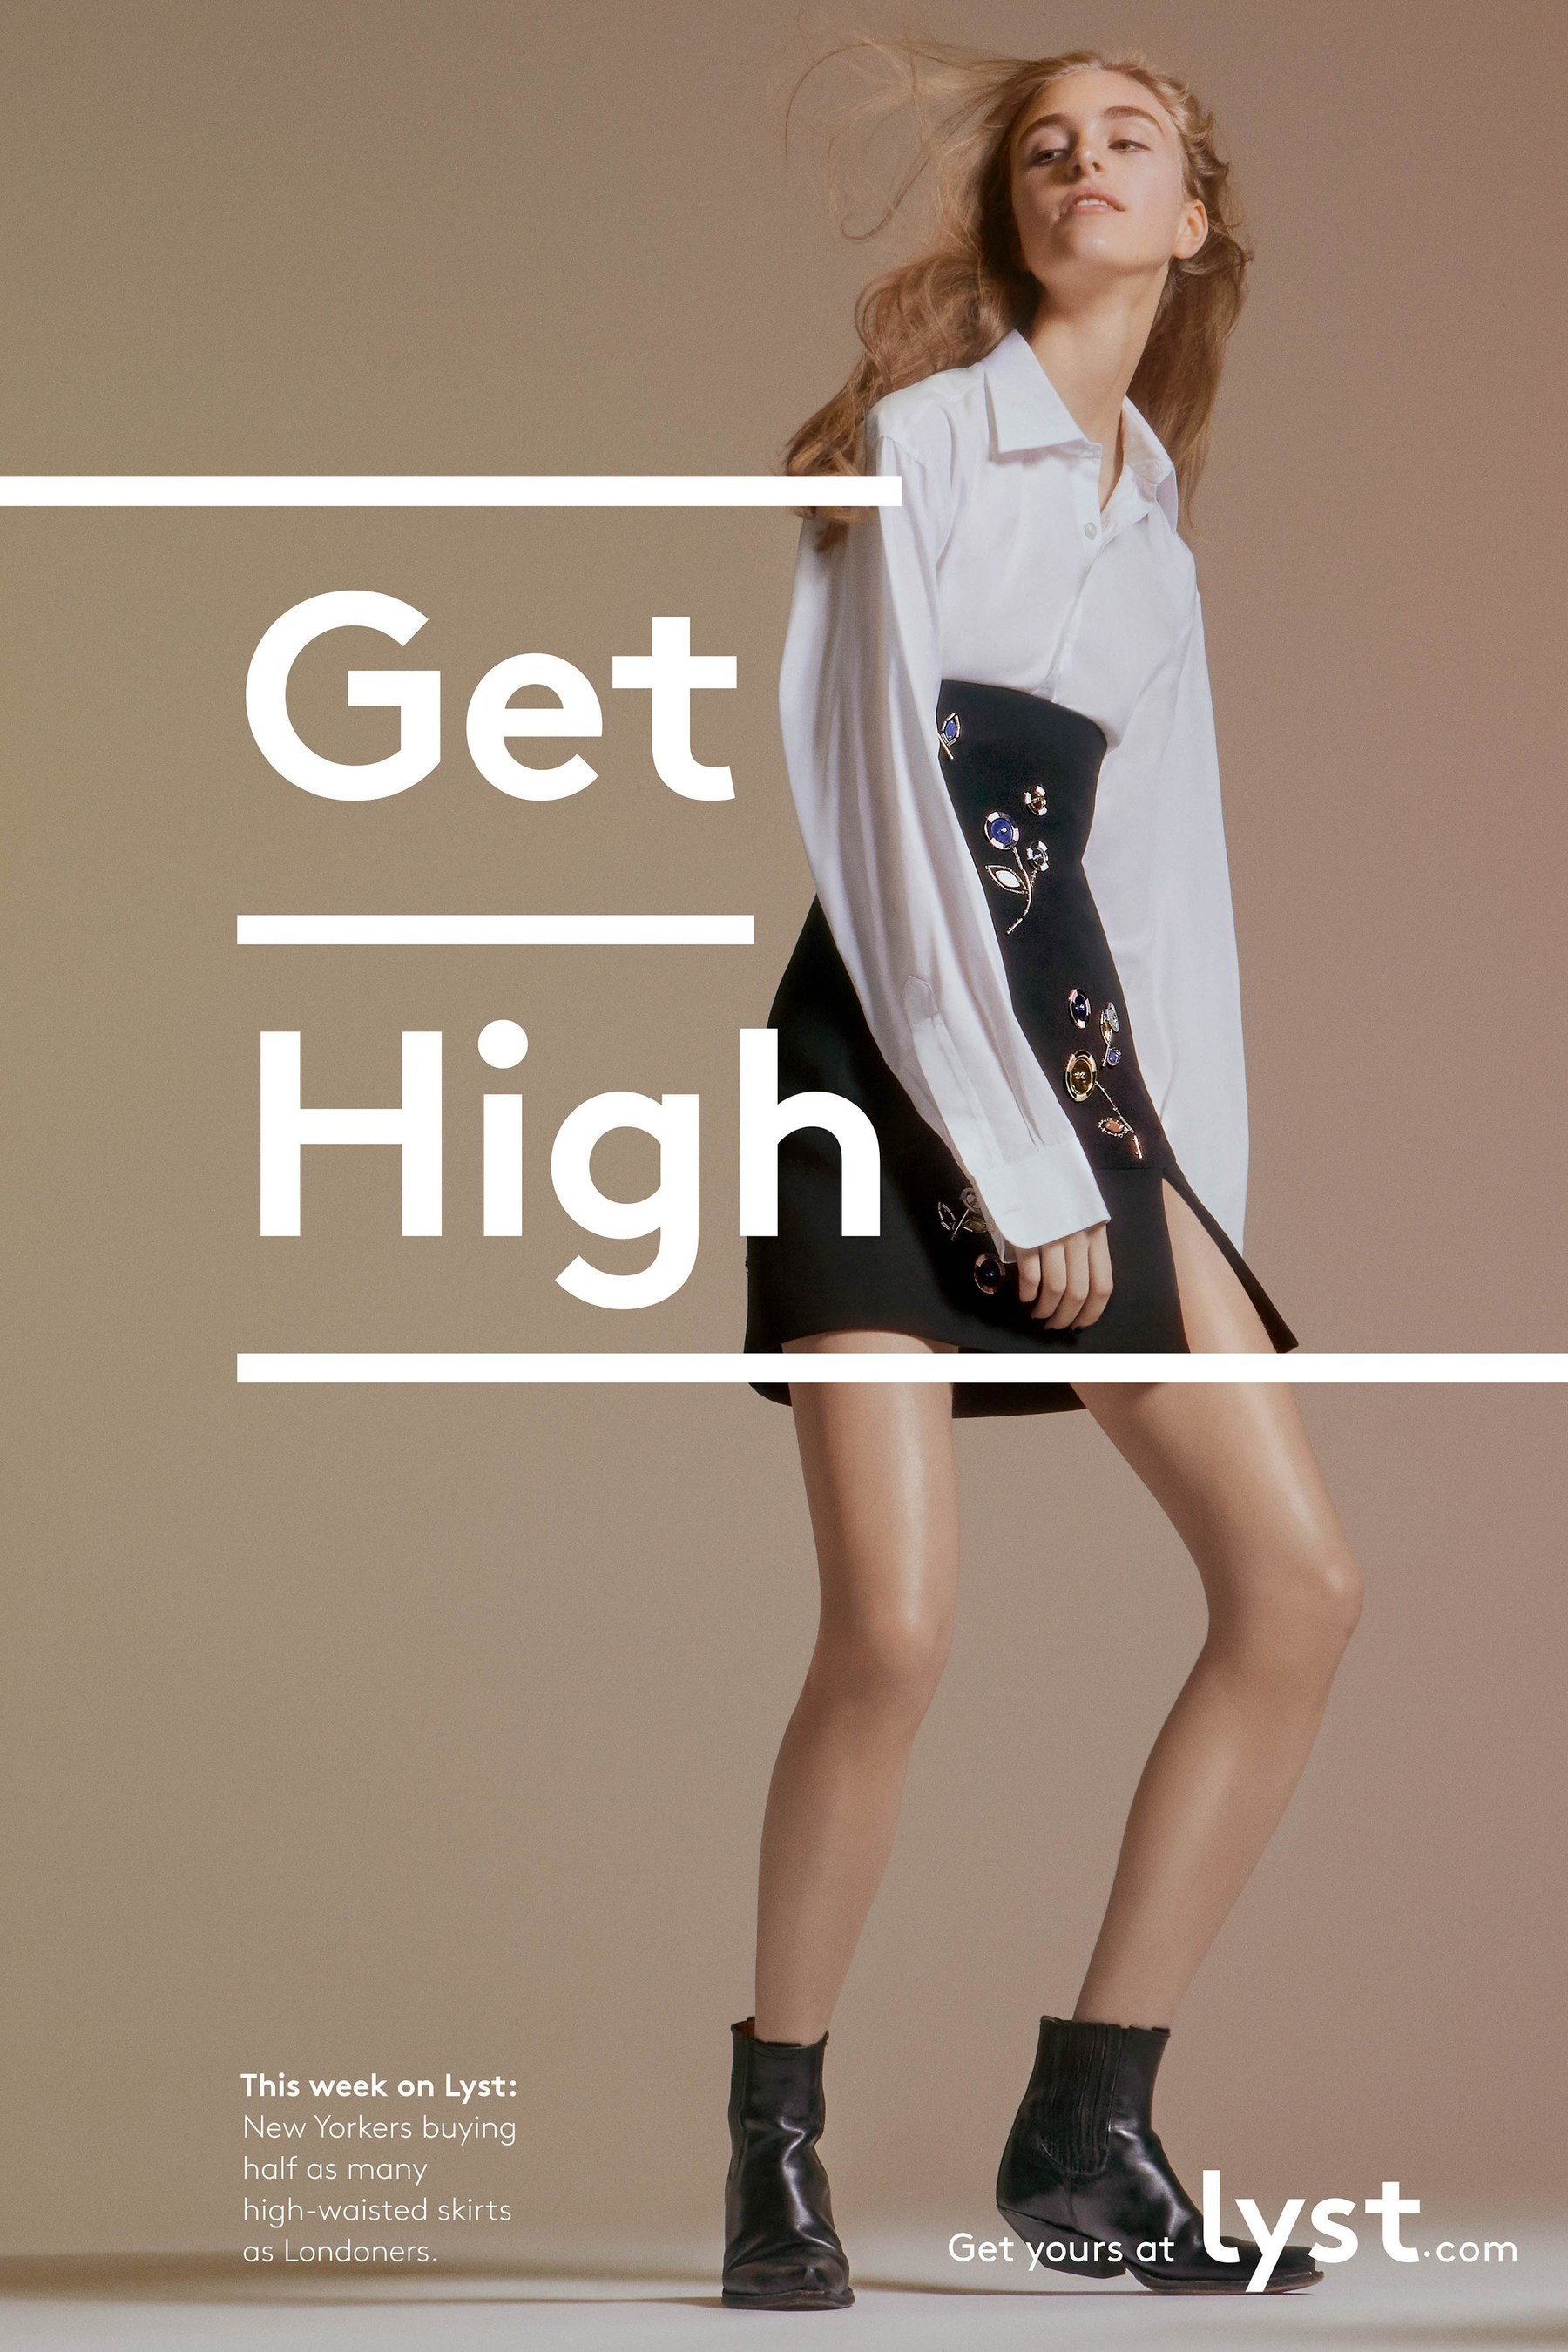 Lyst ad campaign image